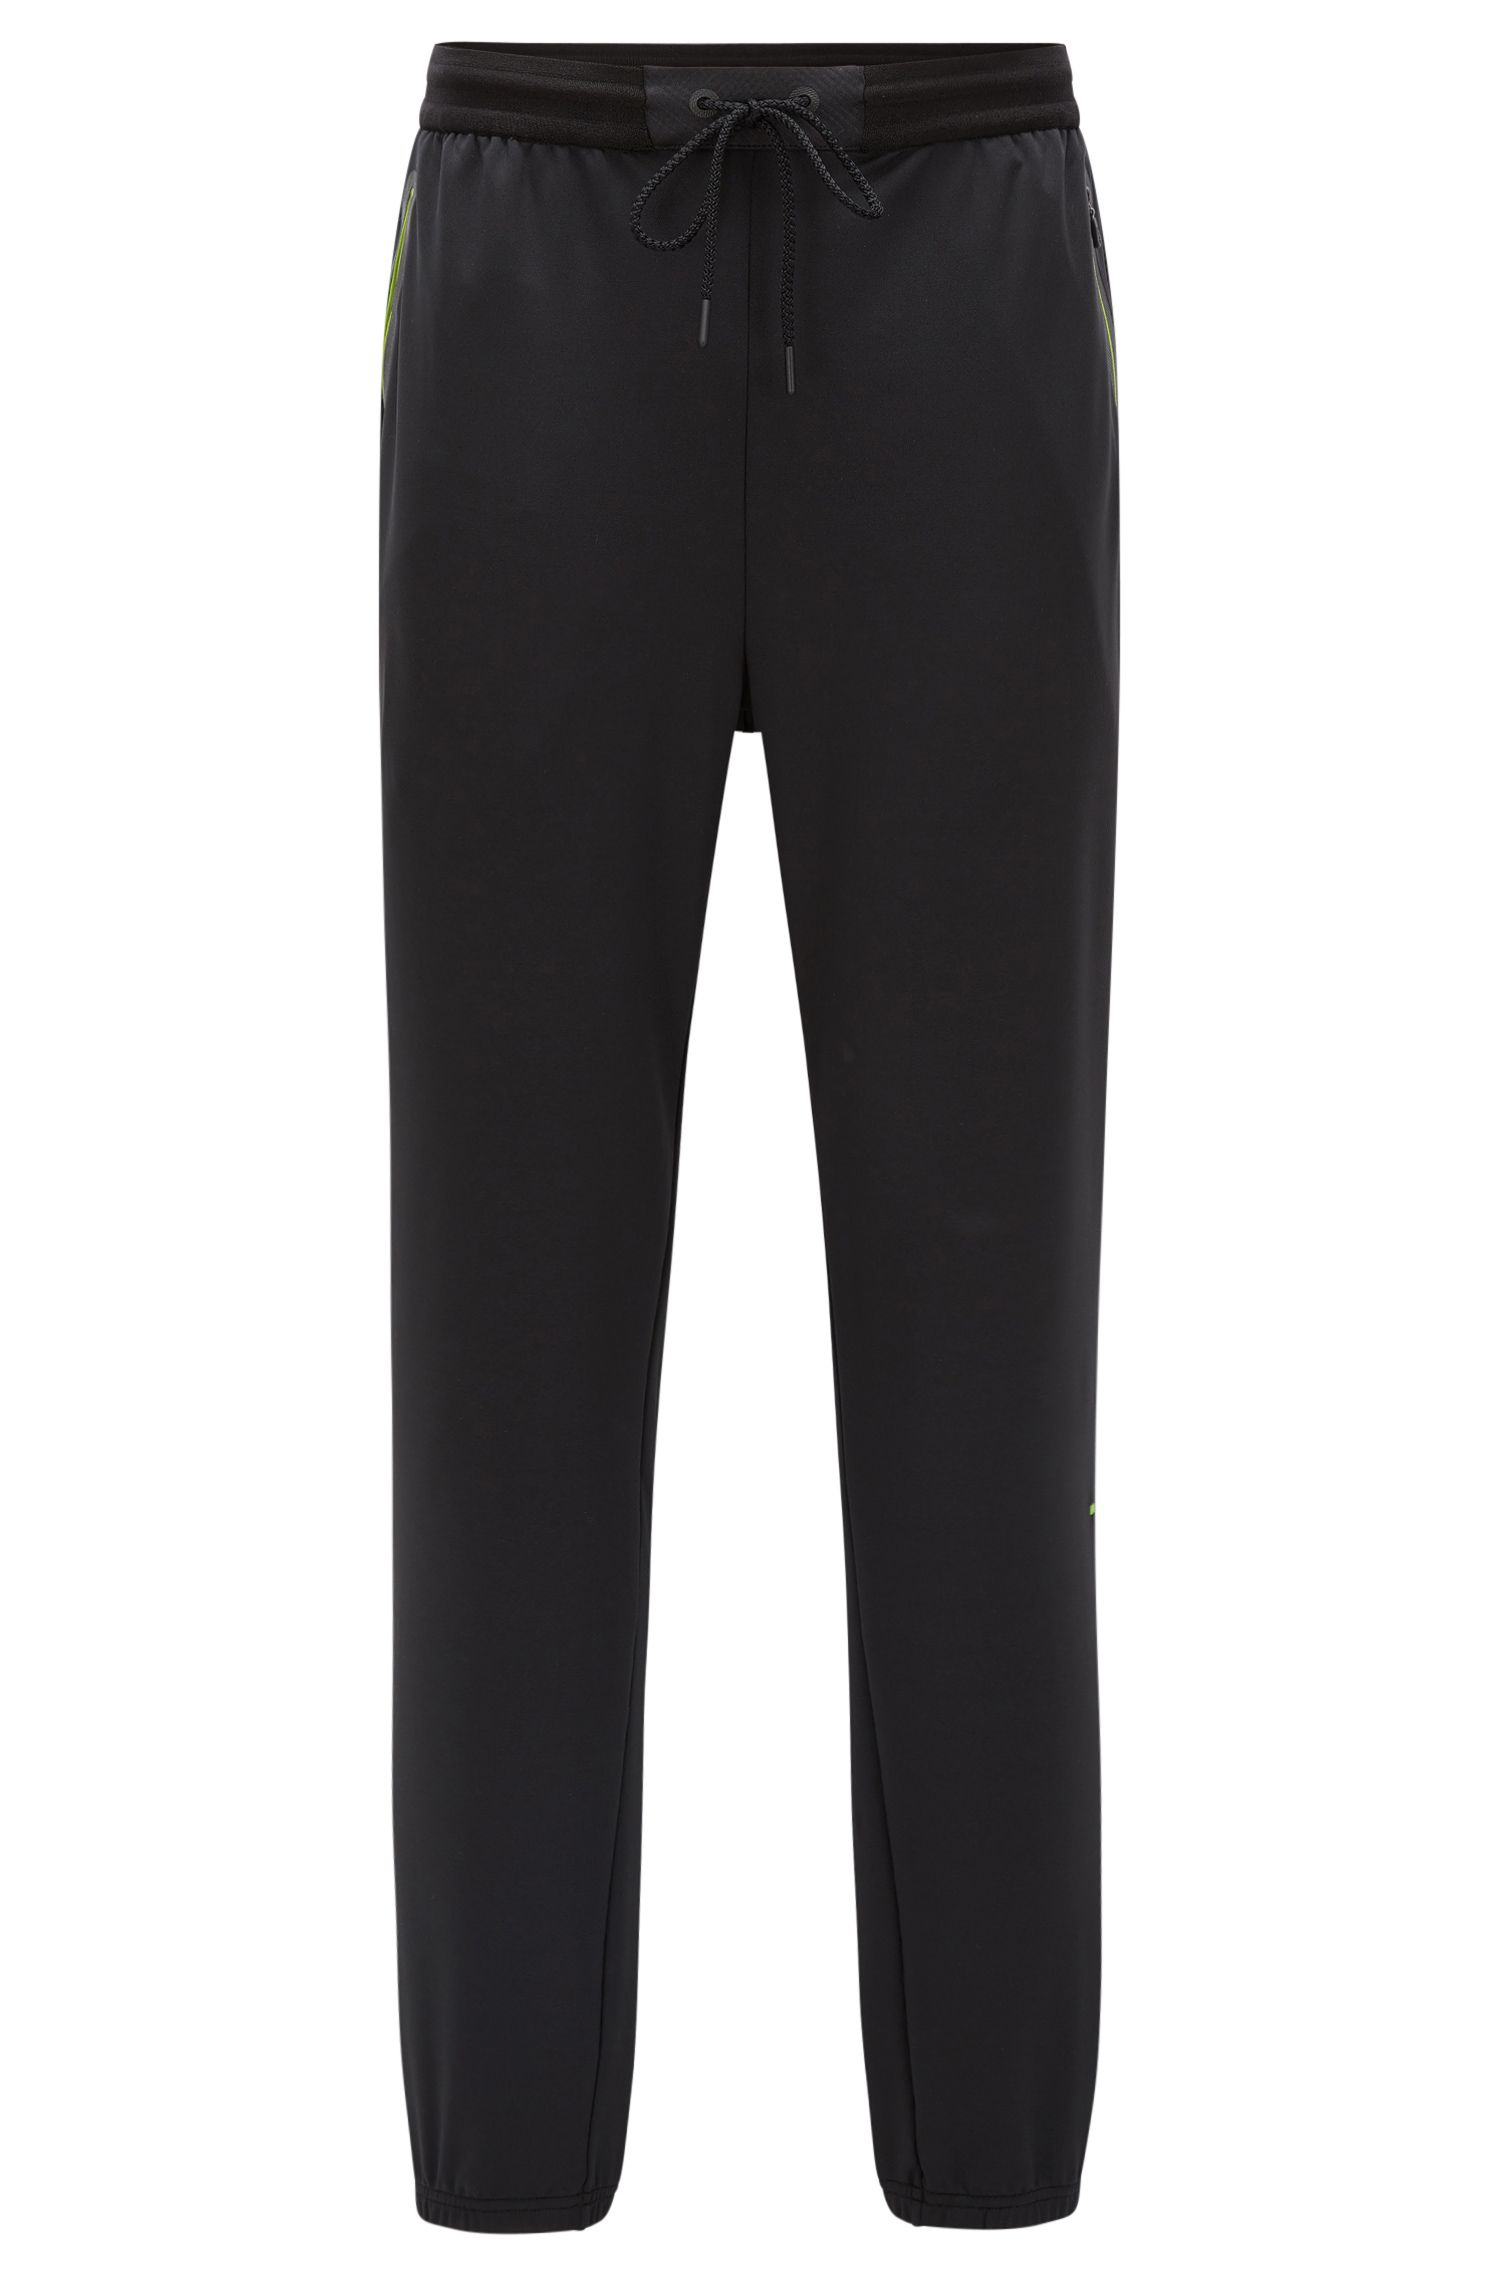 Slim-fit jersey trousers in technical fabric